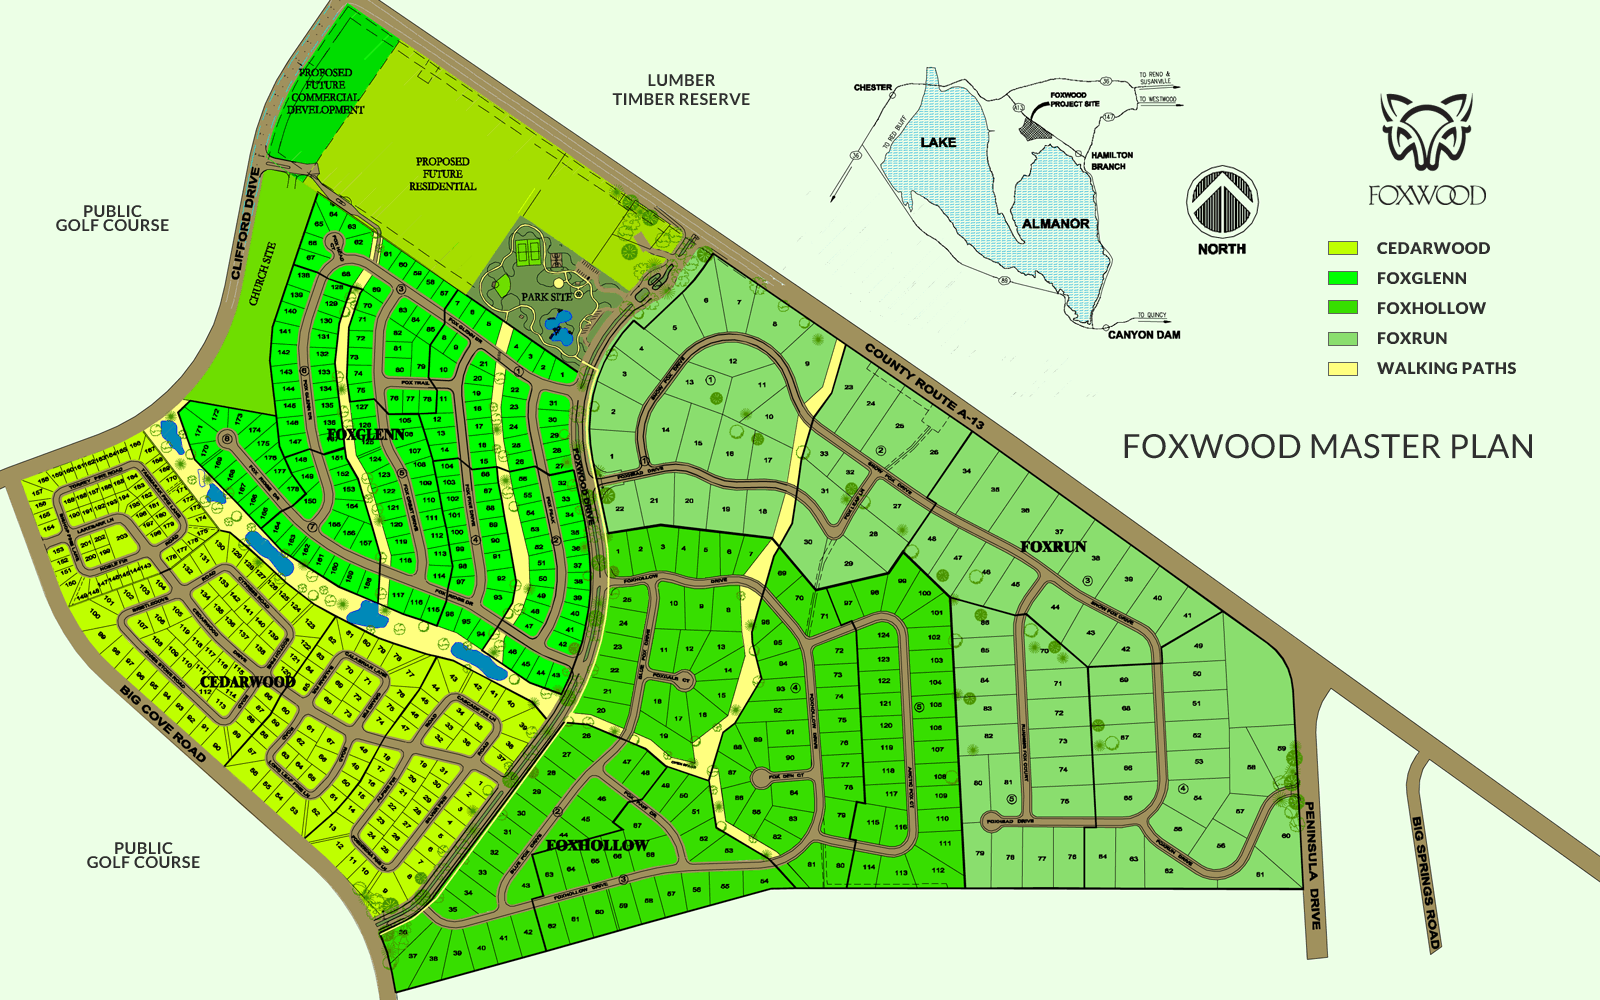 Foxwood Master Plan